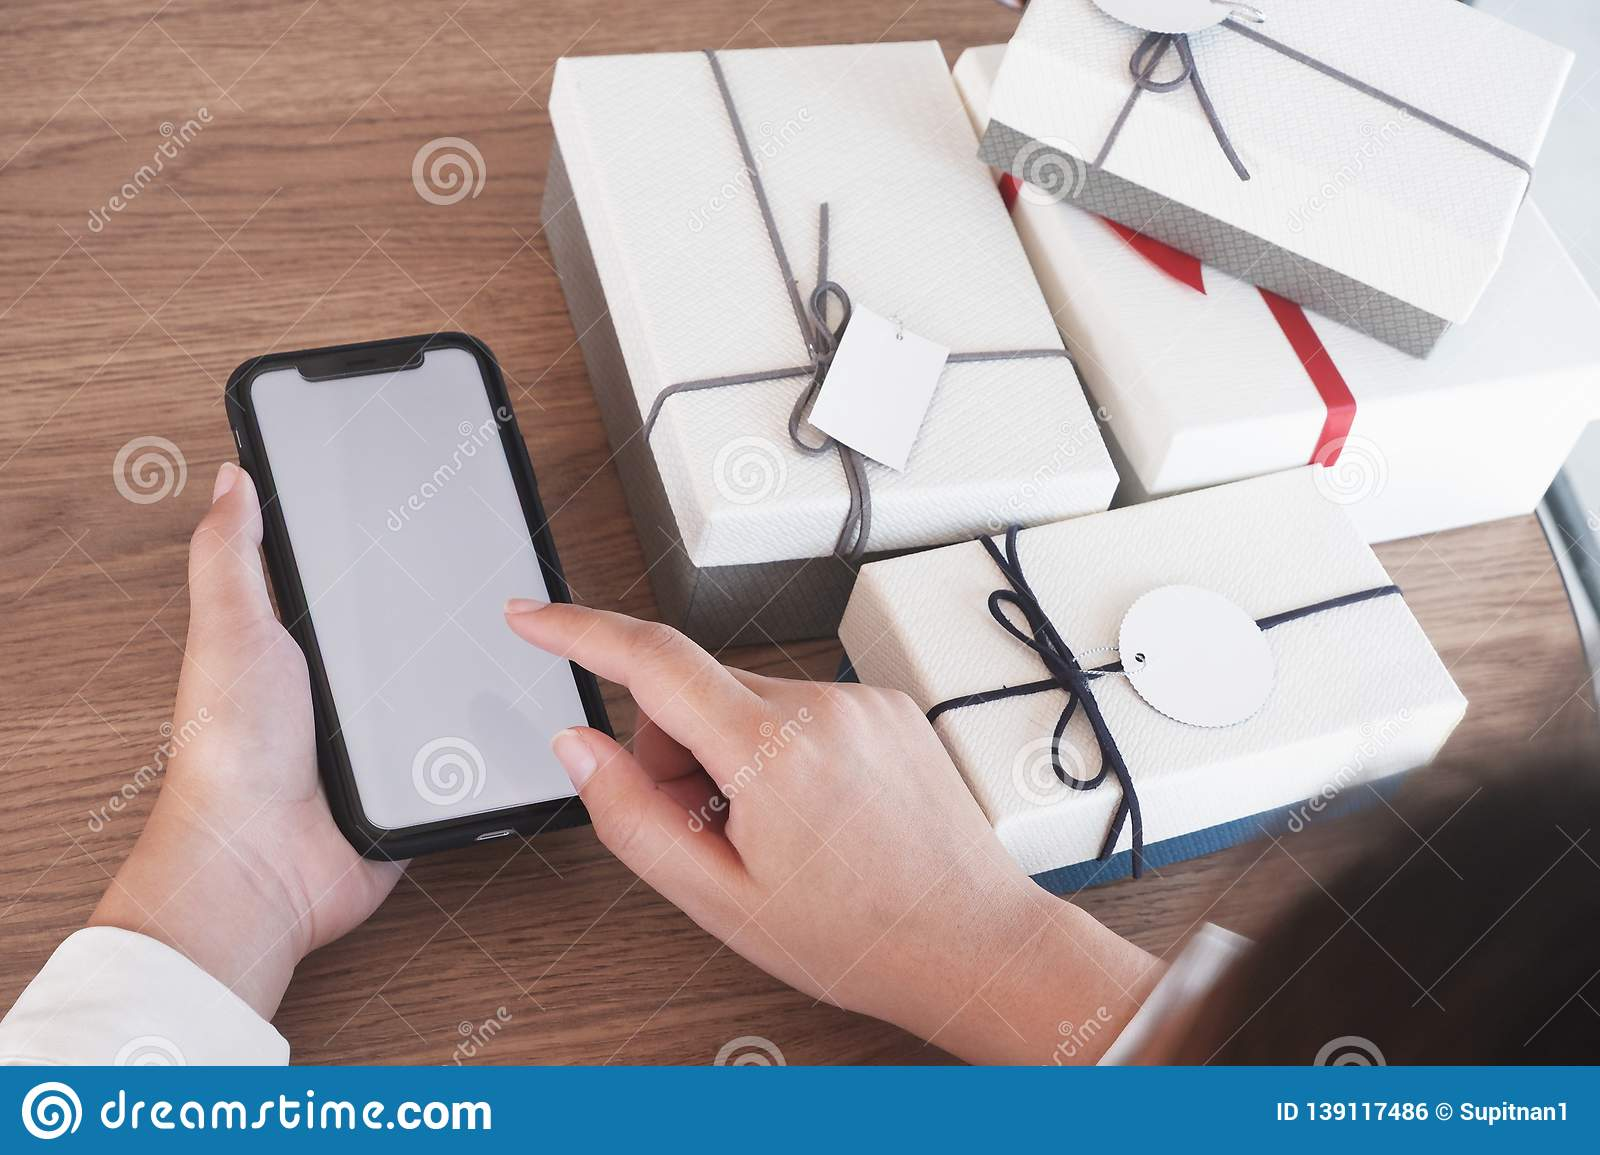 Close-up hand using smartphone for shopping online, gift box on table, shopping for presents